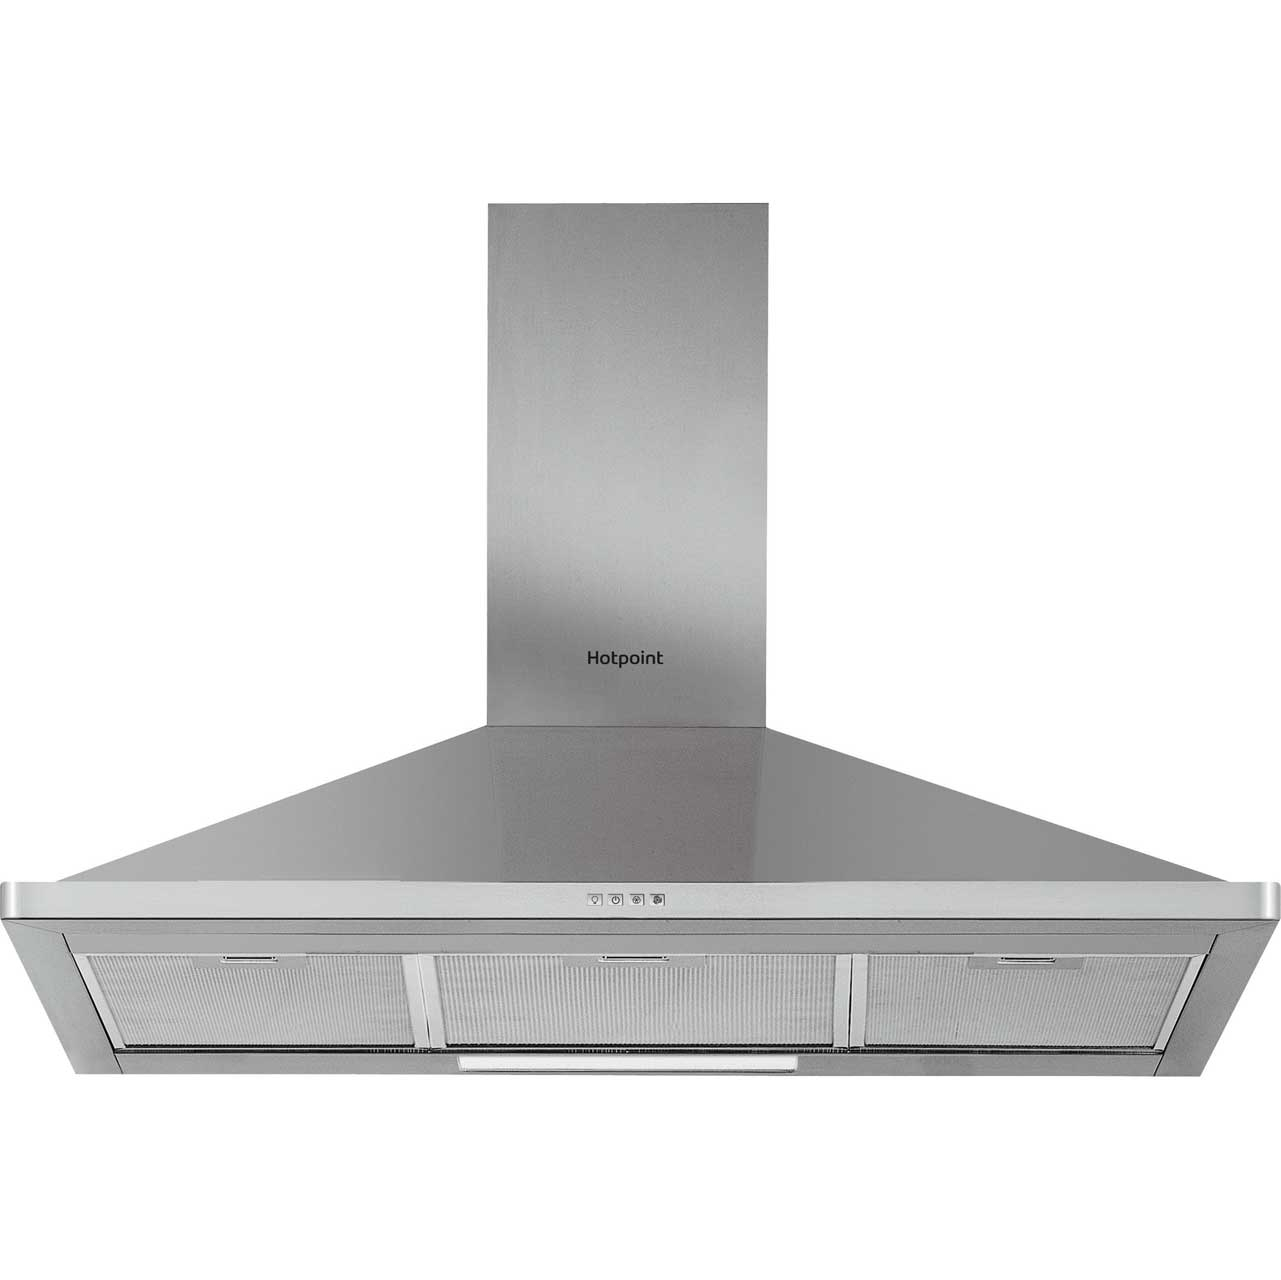 Hotpoint PHPN94FAMX Integrated Cooker Hood in Stainless Steel